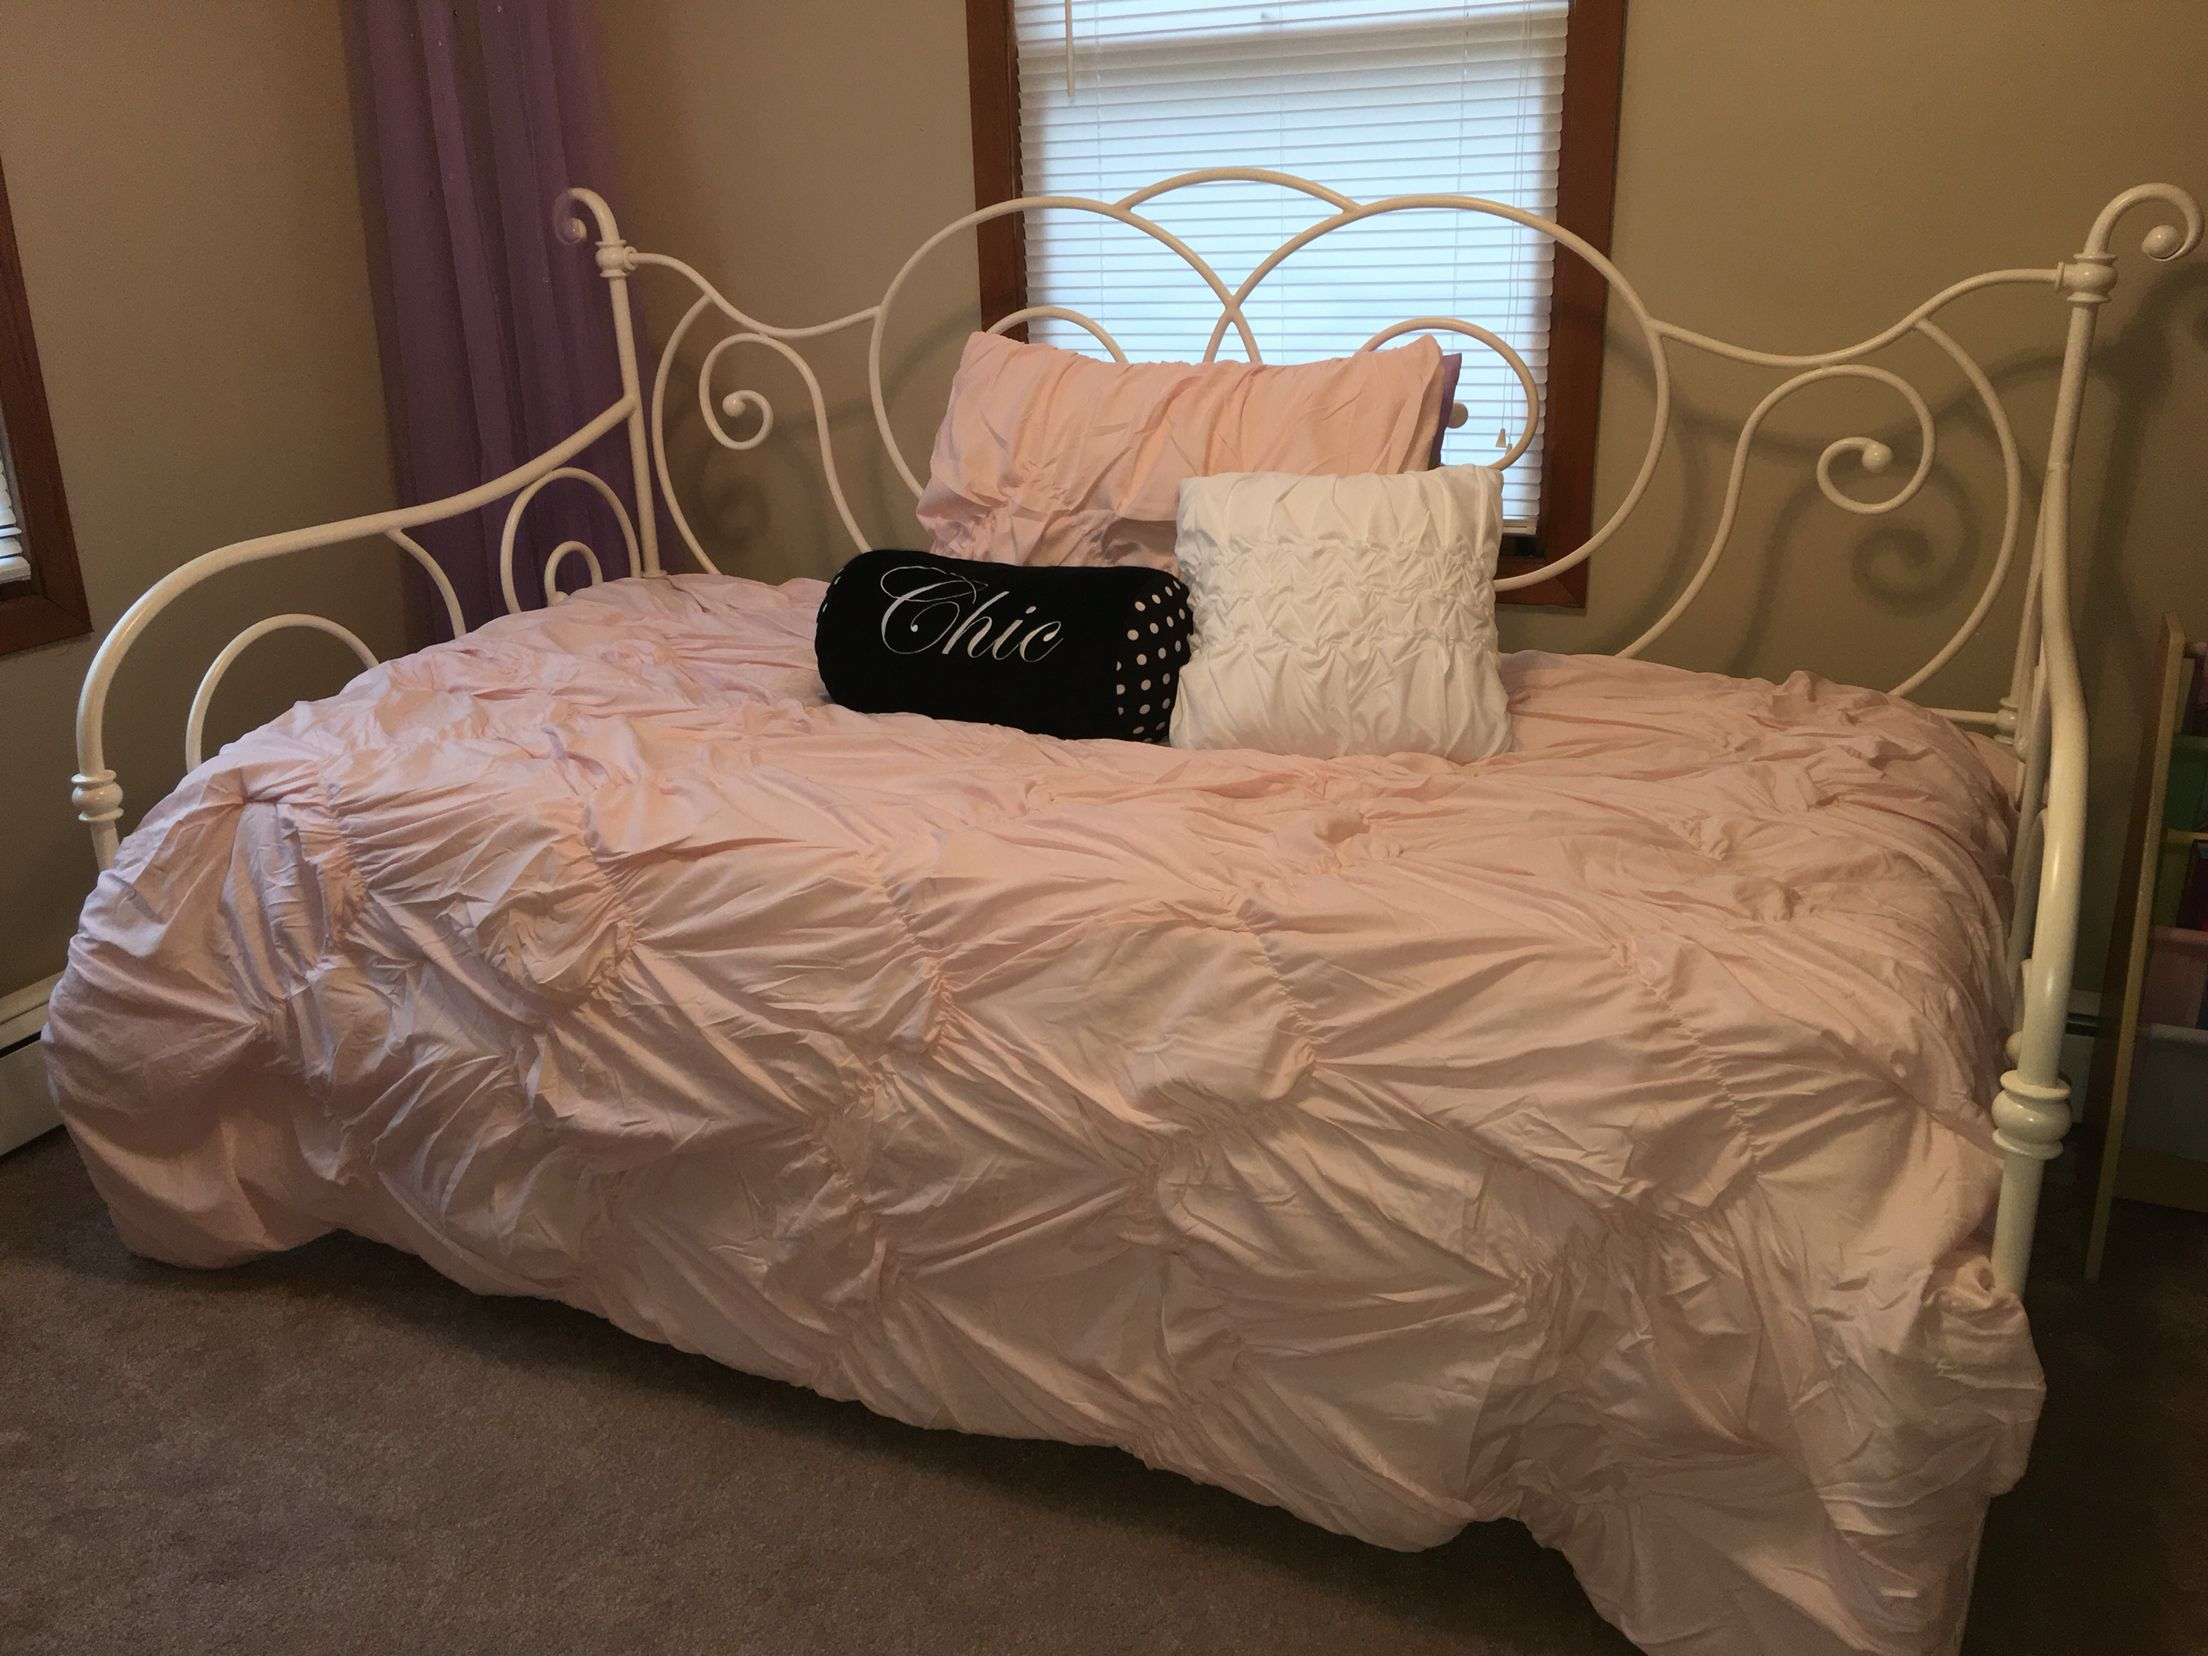 Daybed With Trundle And Light Pink Bedding Set From Target Includes Comforter Sham White Accent Pillow Flat Sheet Ed Case